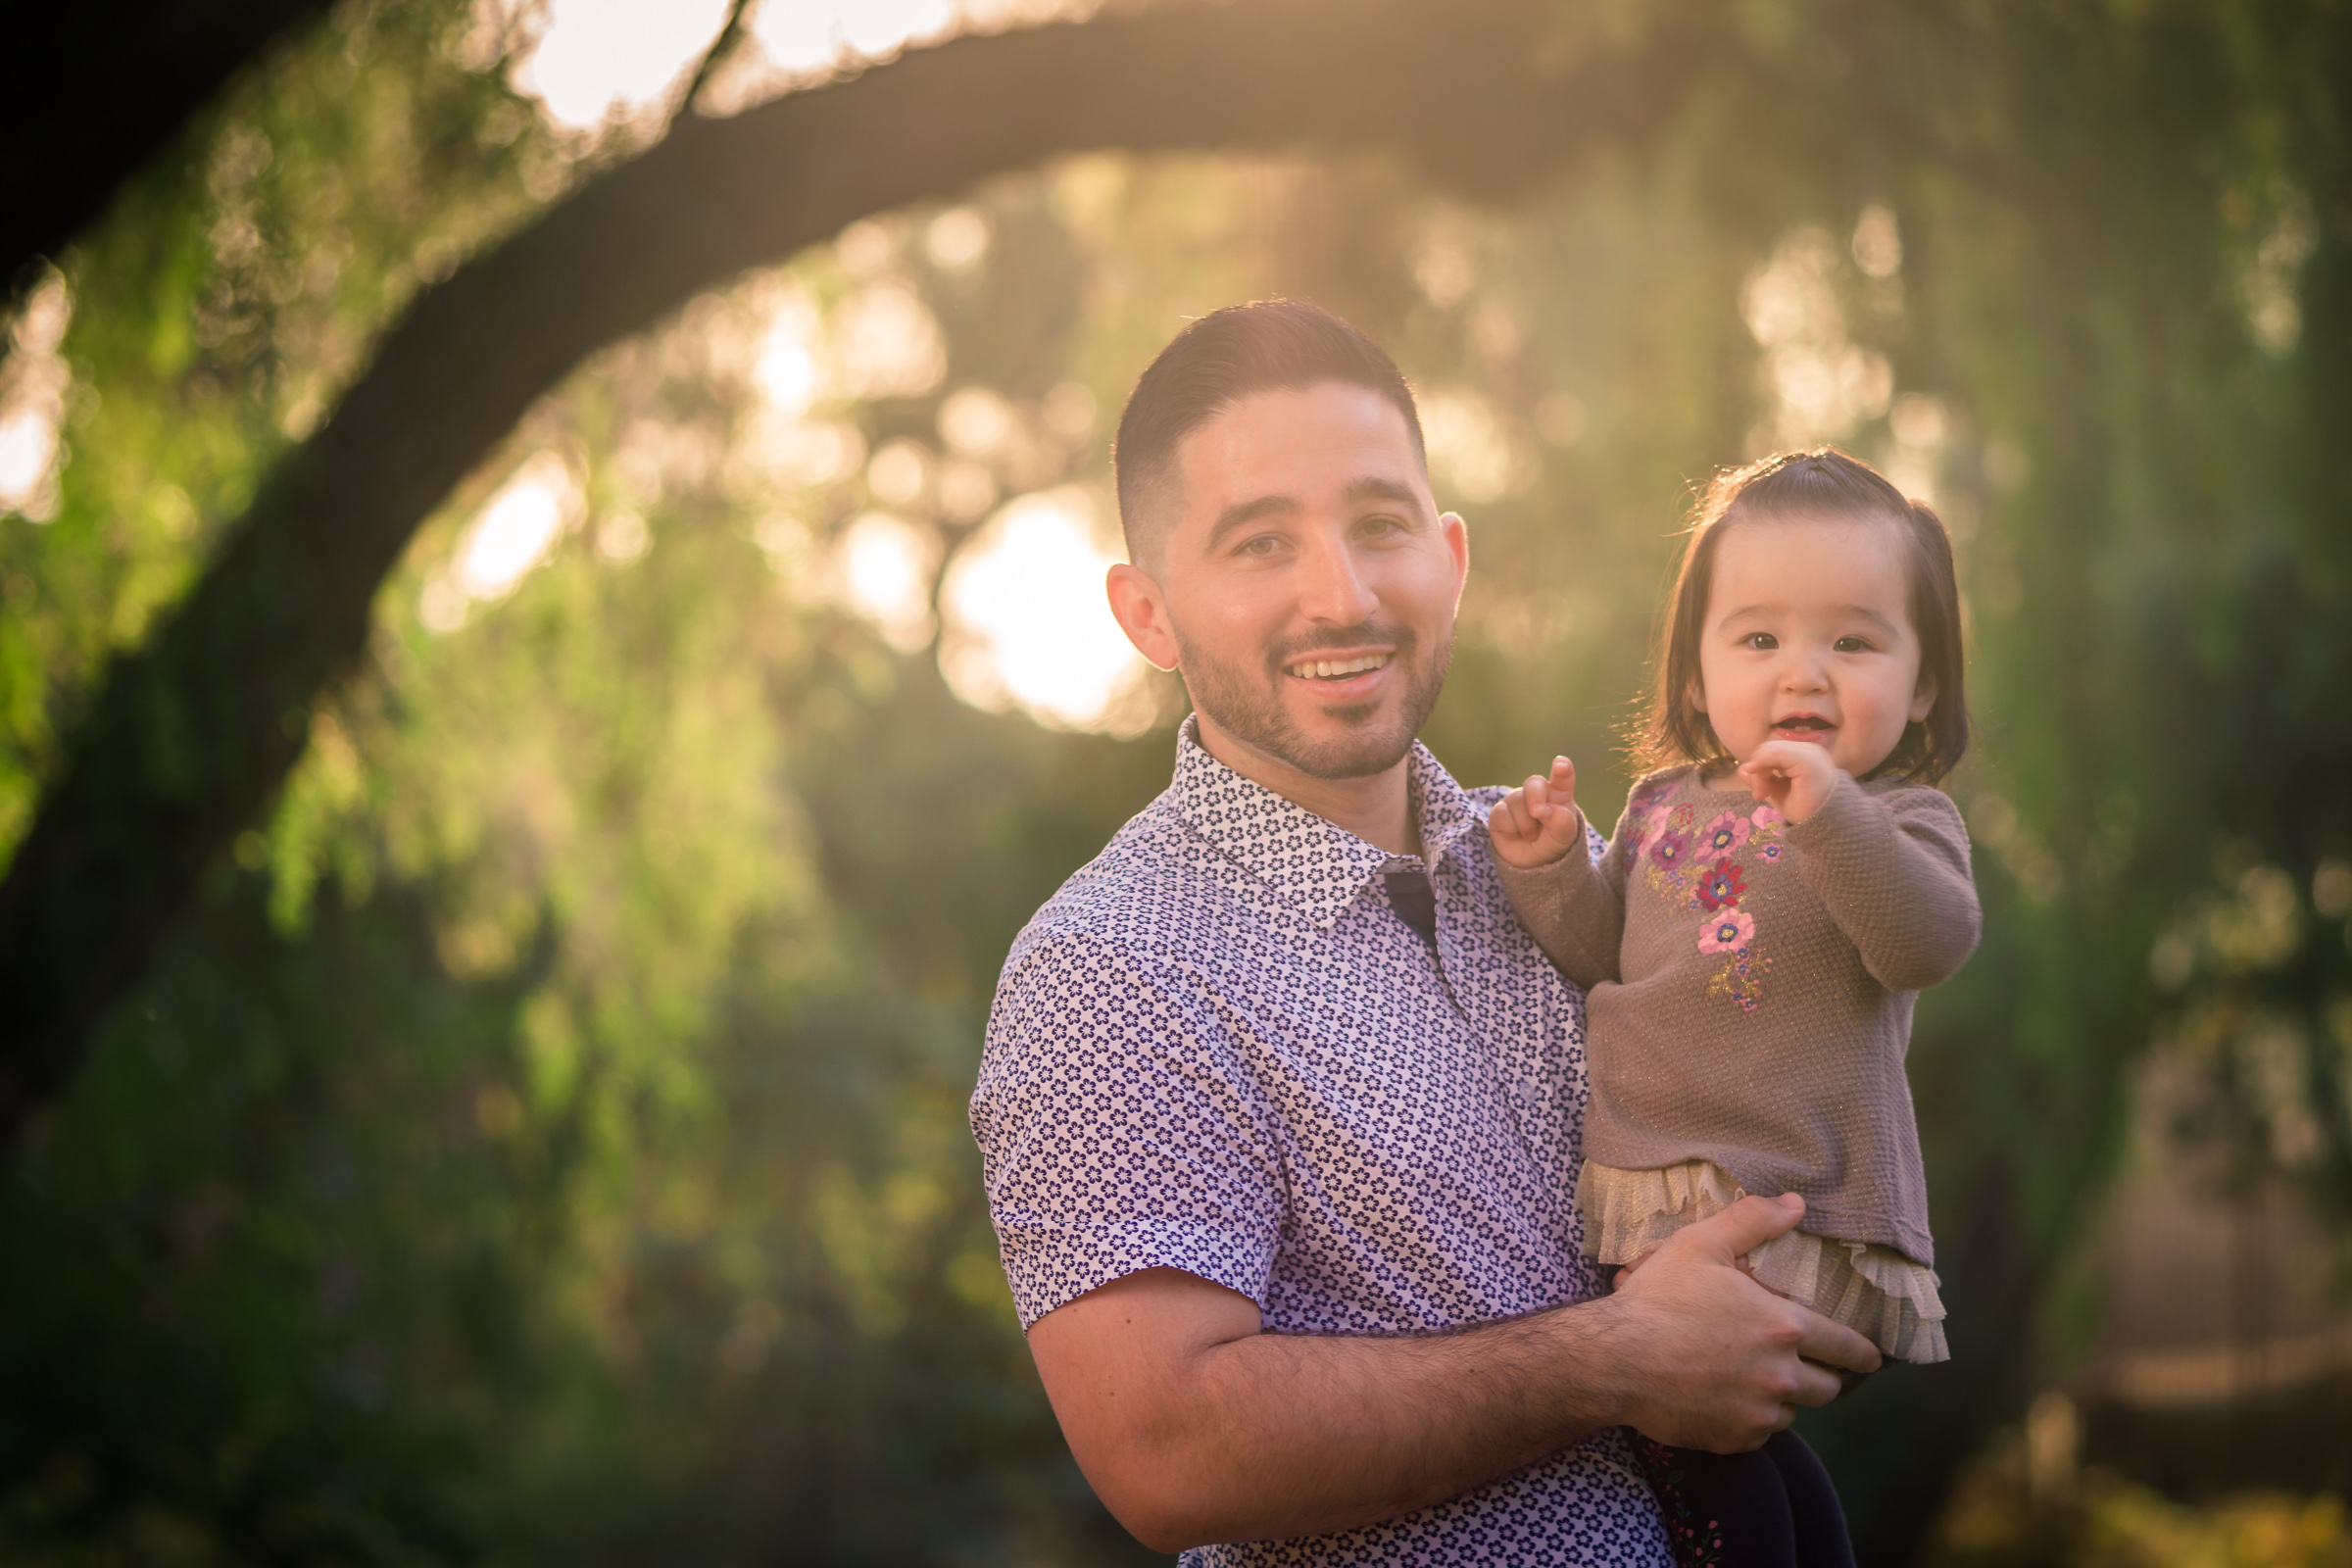 Candid photo of a little girl smiling with father during a Family portrait photo shoot in orange county on the Juanita Cooke Trail with vibrant green trees and grass and the golden hour sun